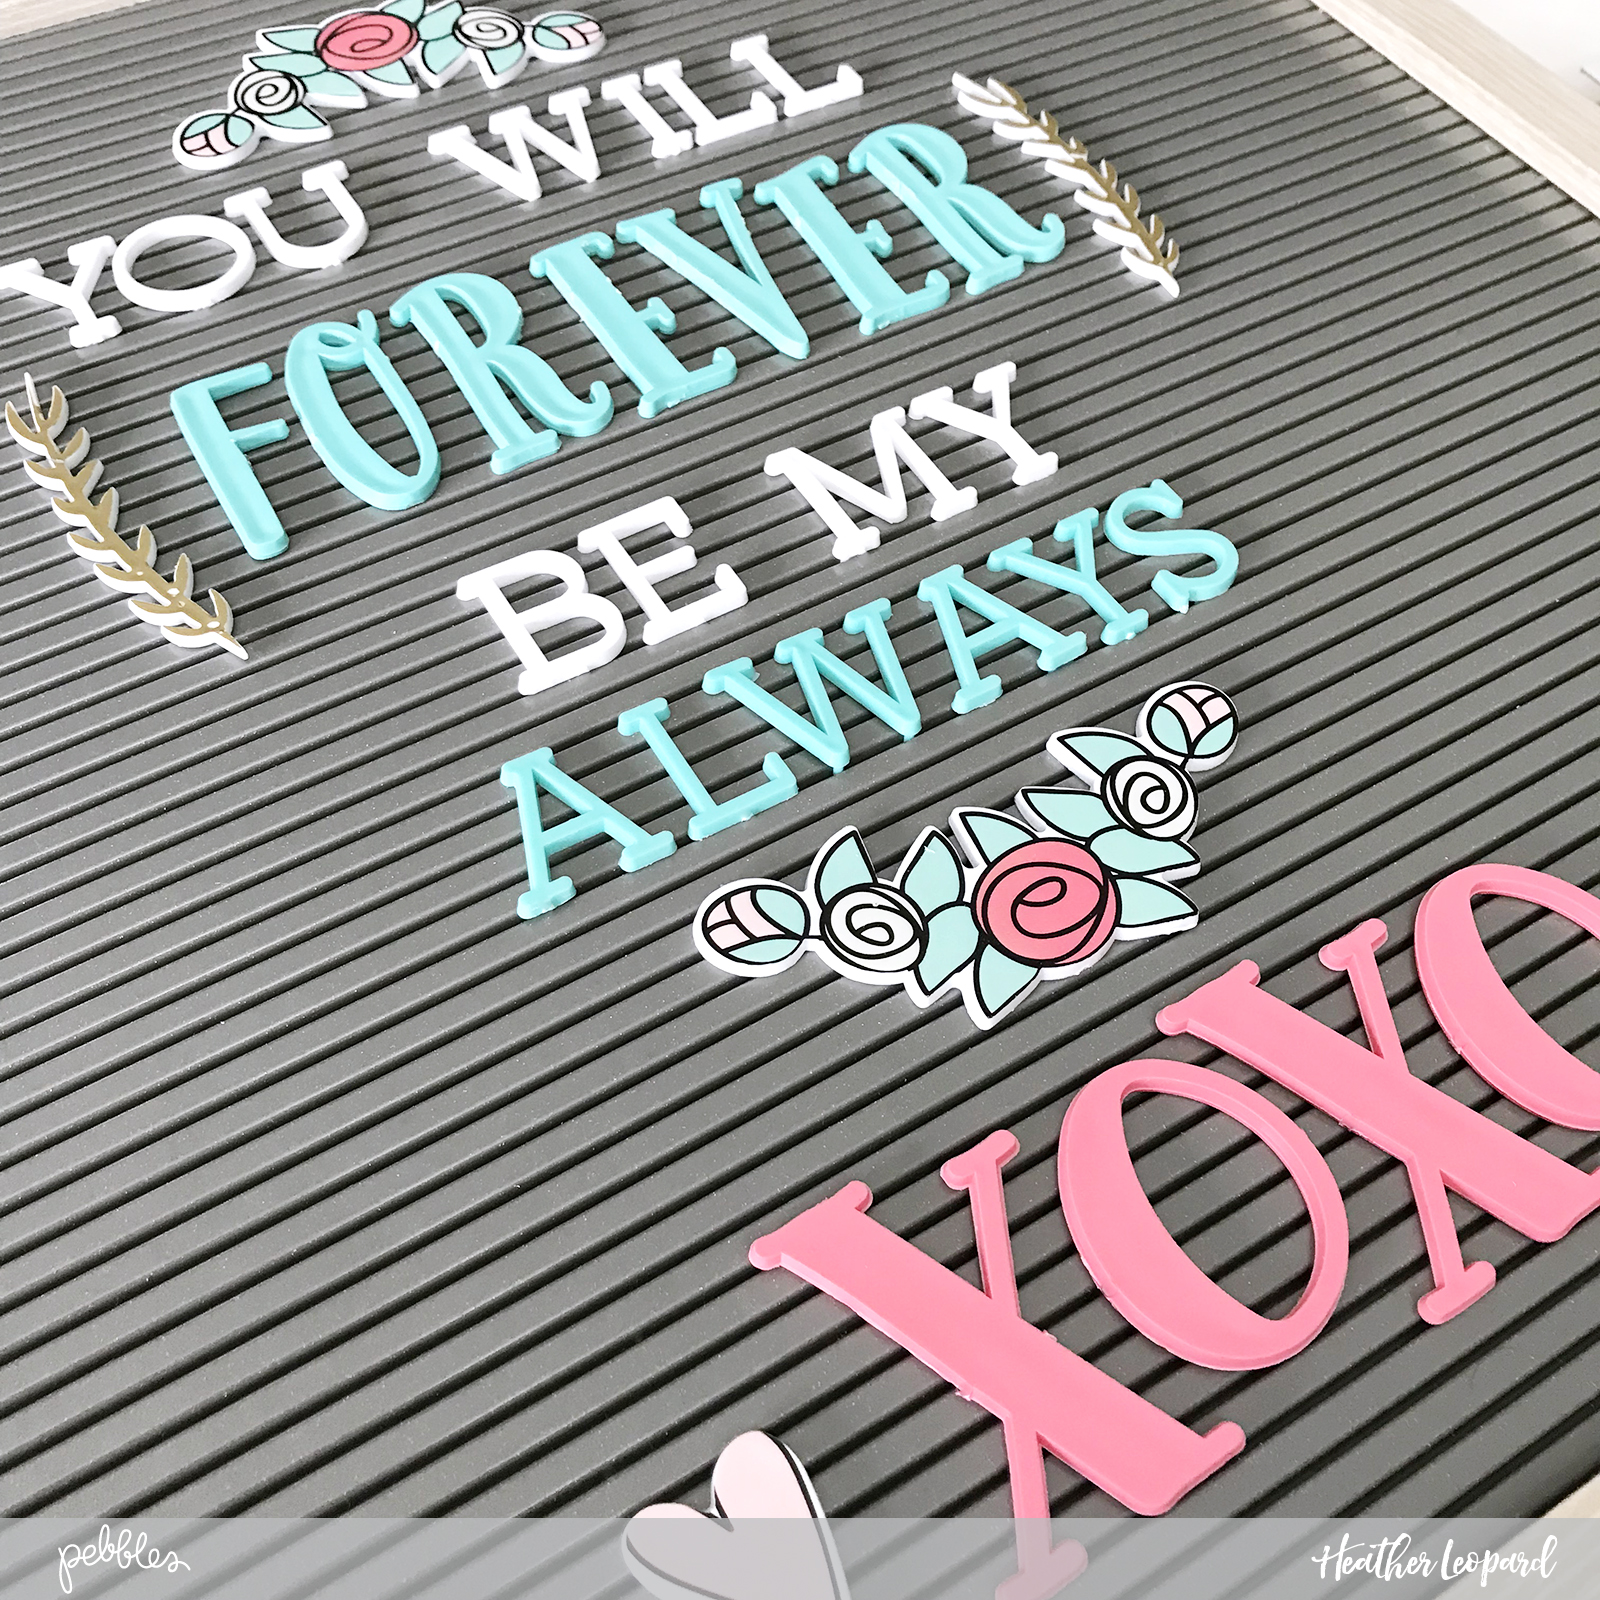 Letterboard Love Forever my Always Letterboard by Heather Leopard using  DCWV letterboard  for @pebblesinc using @homebydcwv #letterboard #forevermyalways #xoxo #DIY